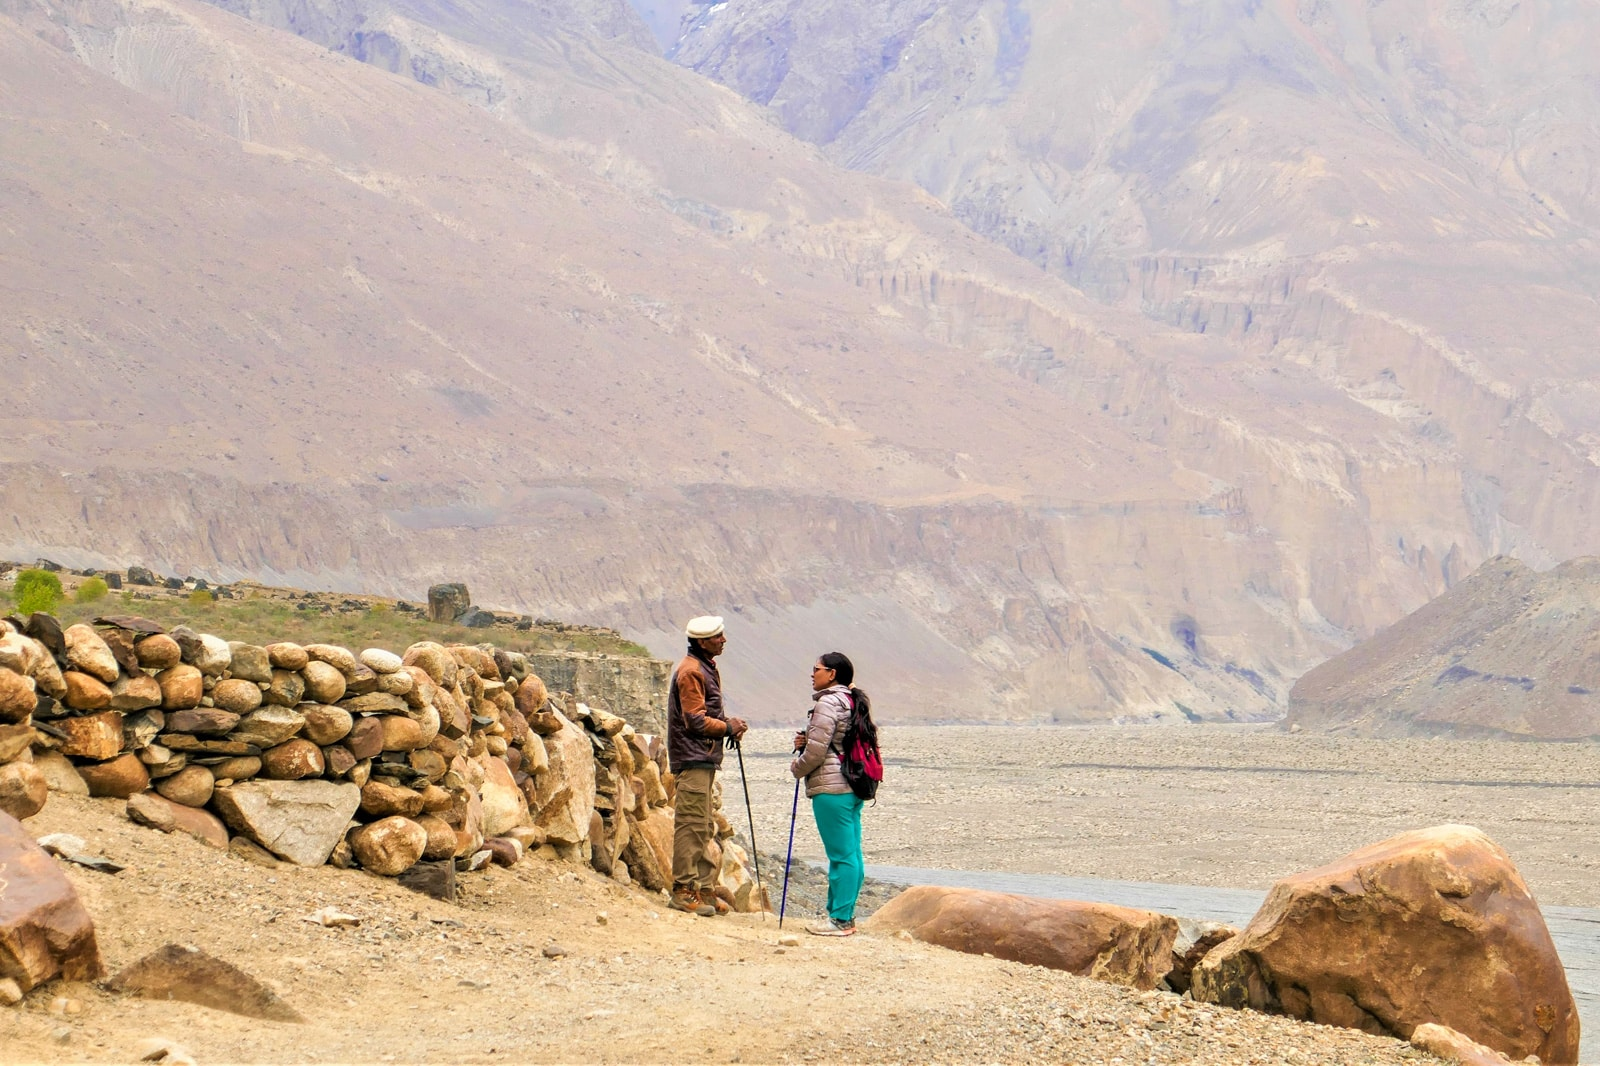 Bossy travelers interview with Aneeqa, head of Pakistan's first female-run tour company - Trekking in Gilgit Baltistan